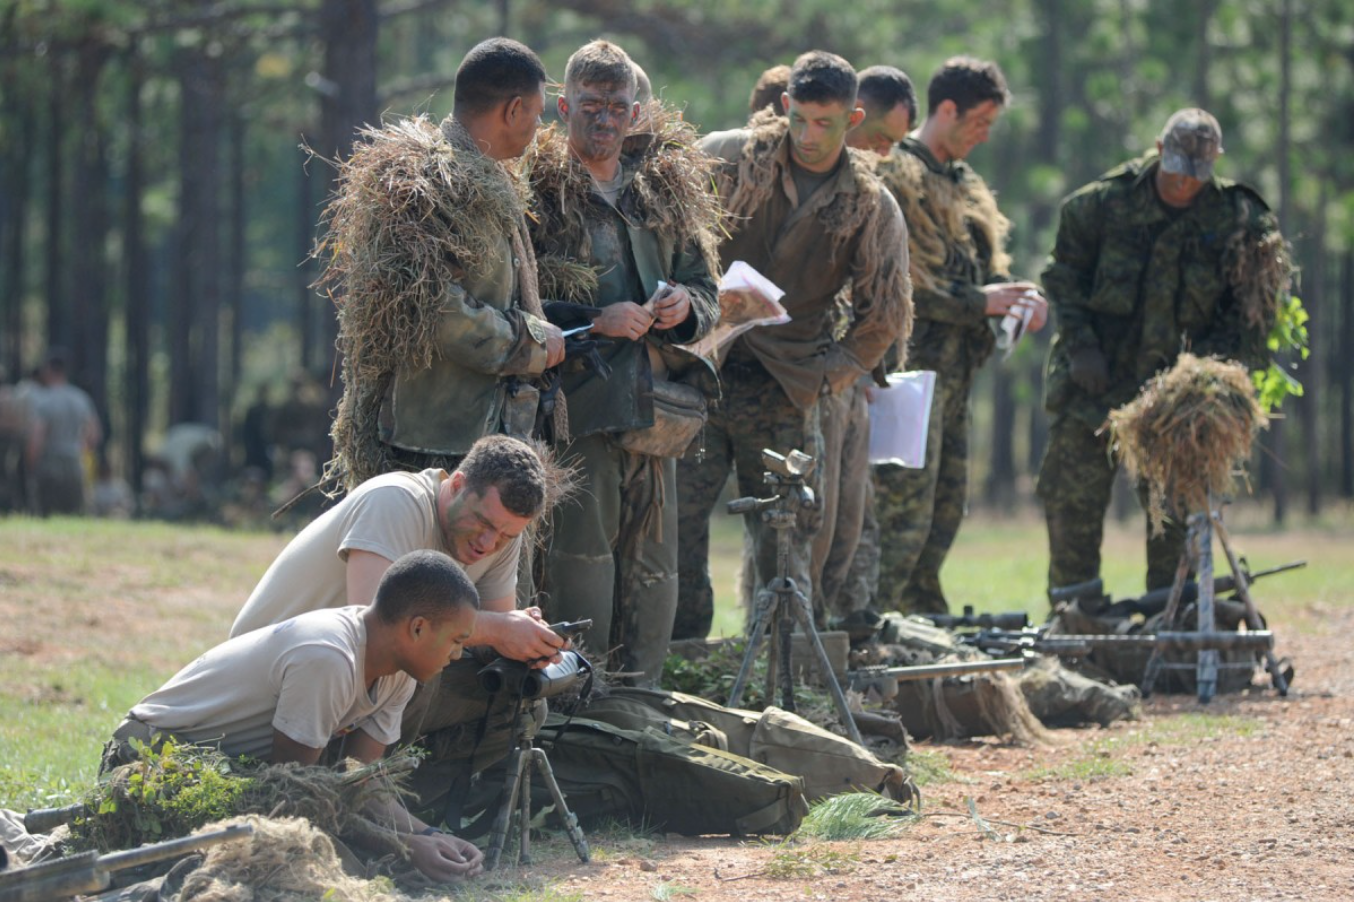 Sniper Teams compete at Fort Benning, GA at the 10th annual sniper competition